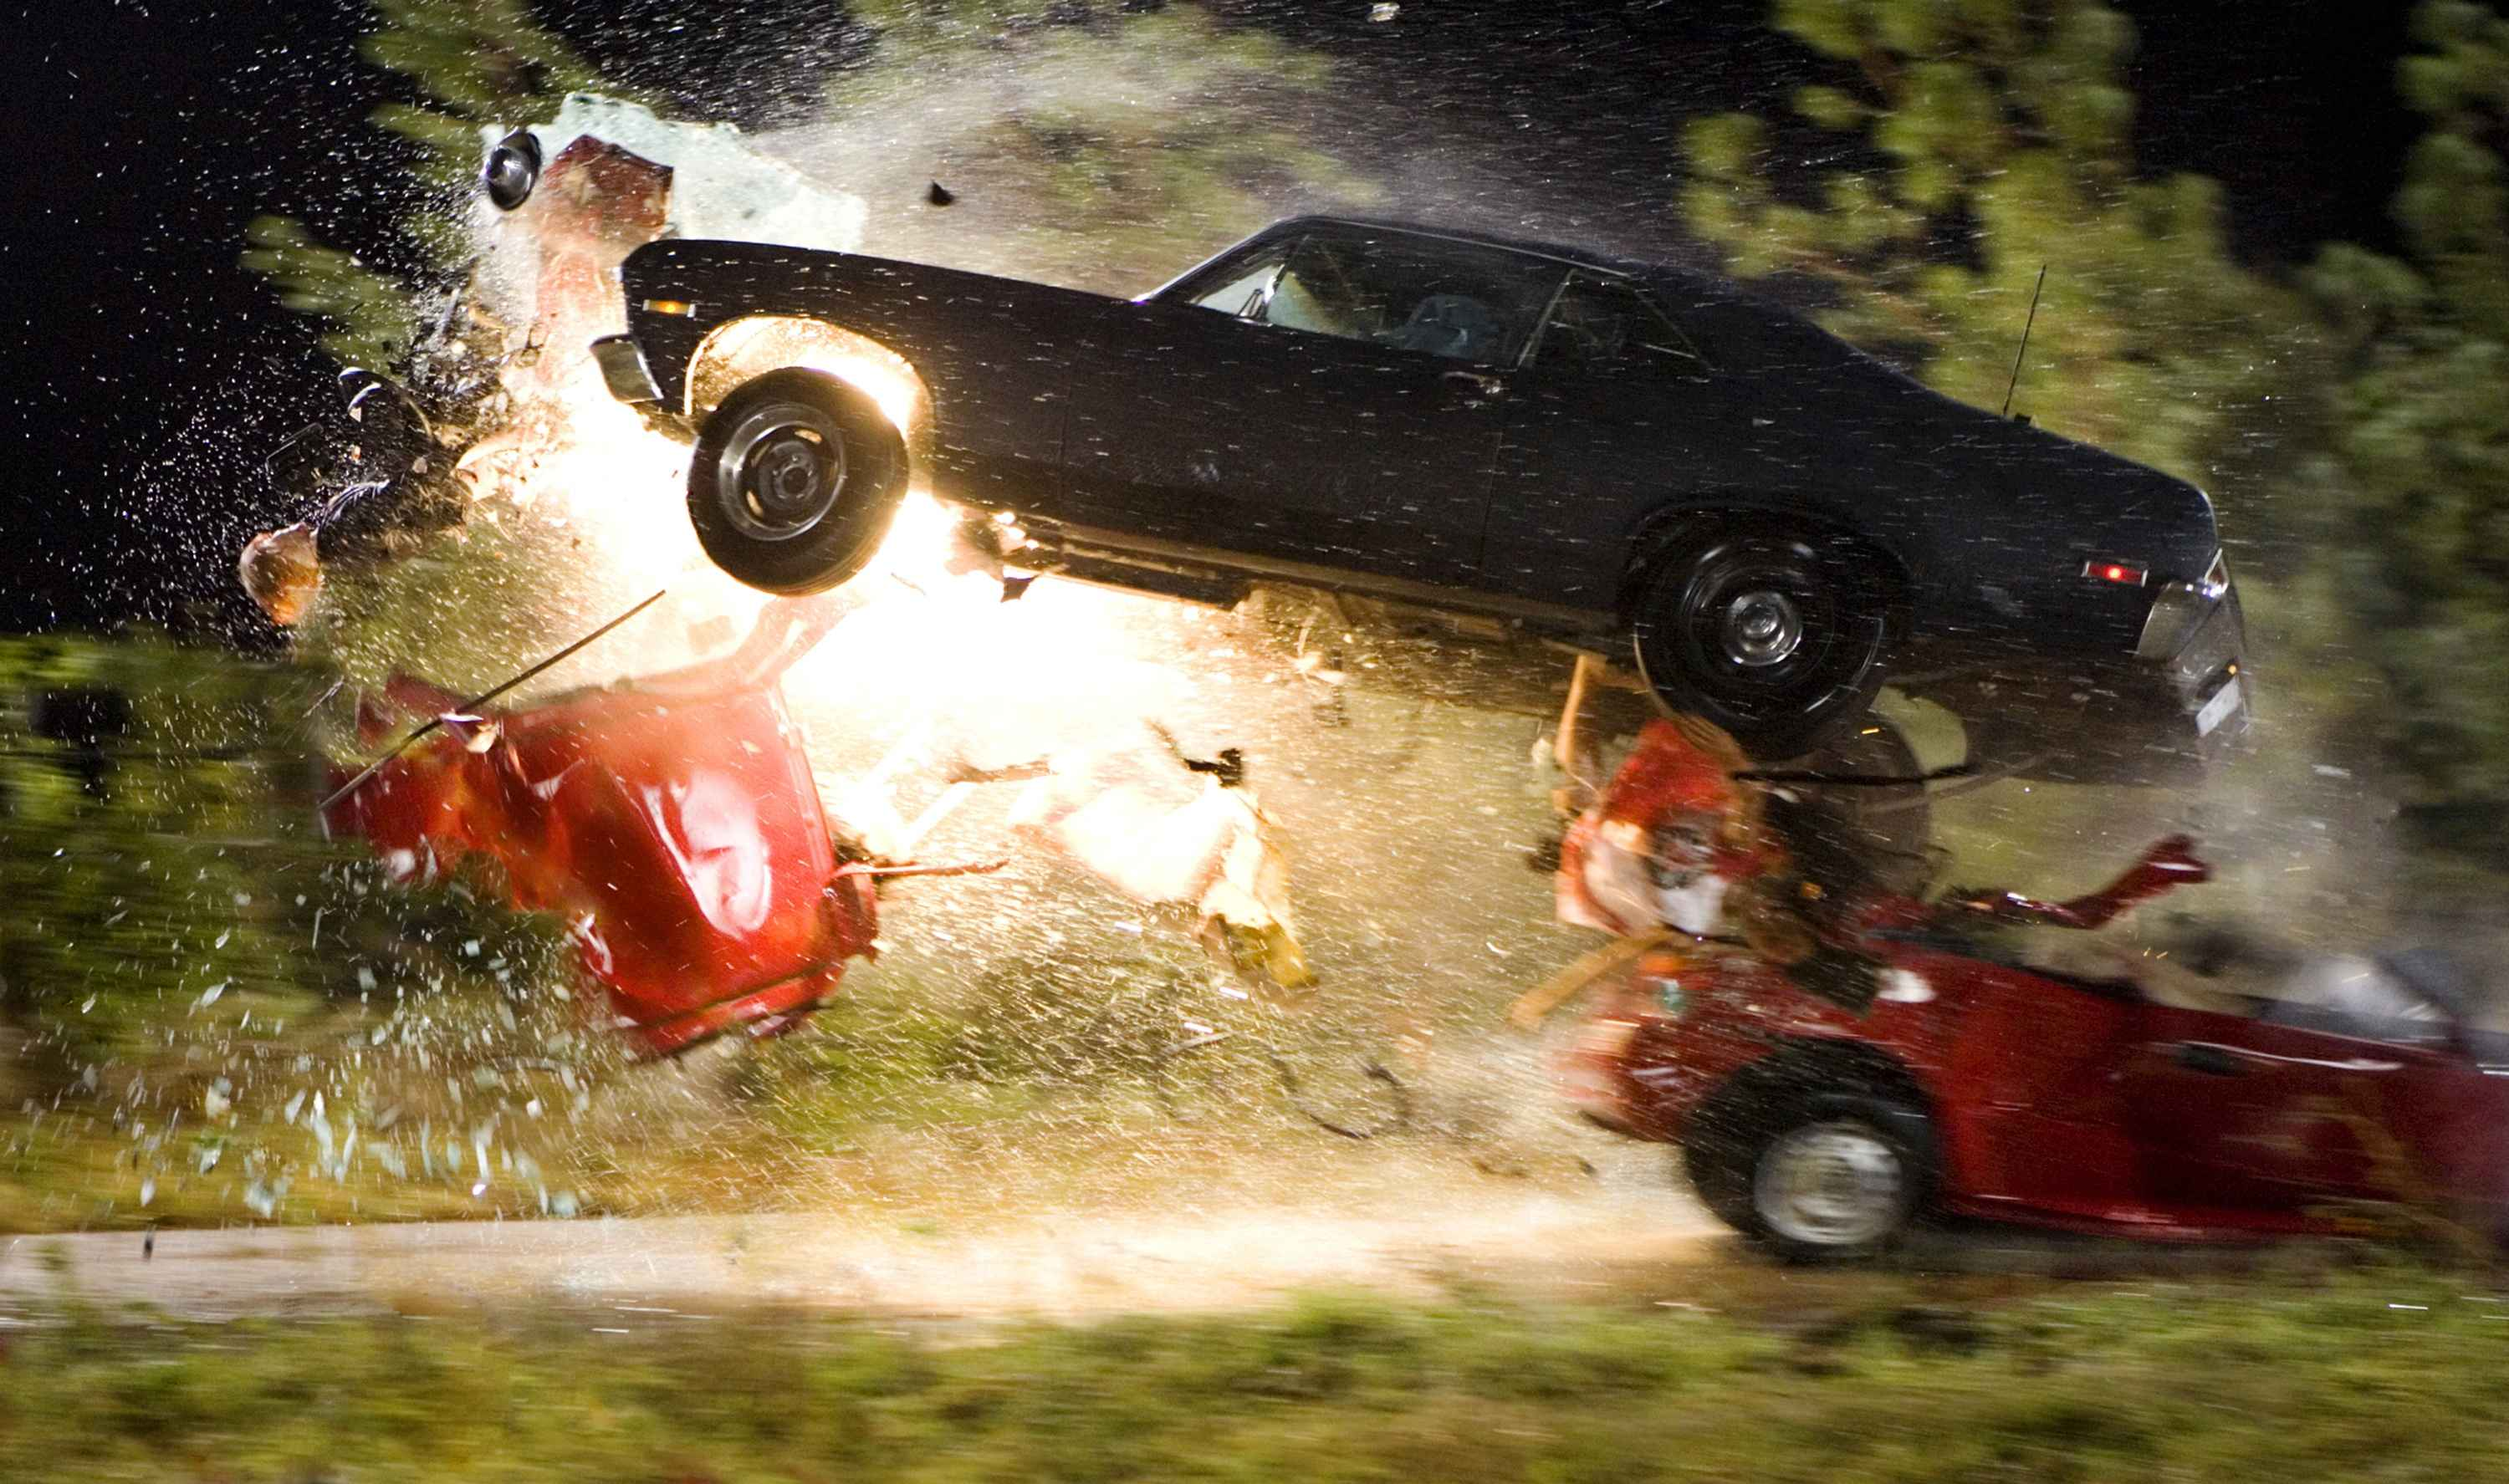 An explosive crash from Quentin Tarantino's Death Proof (Grind House).